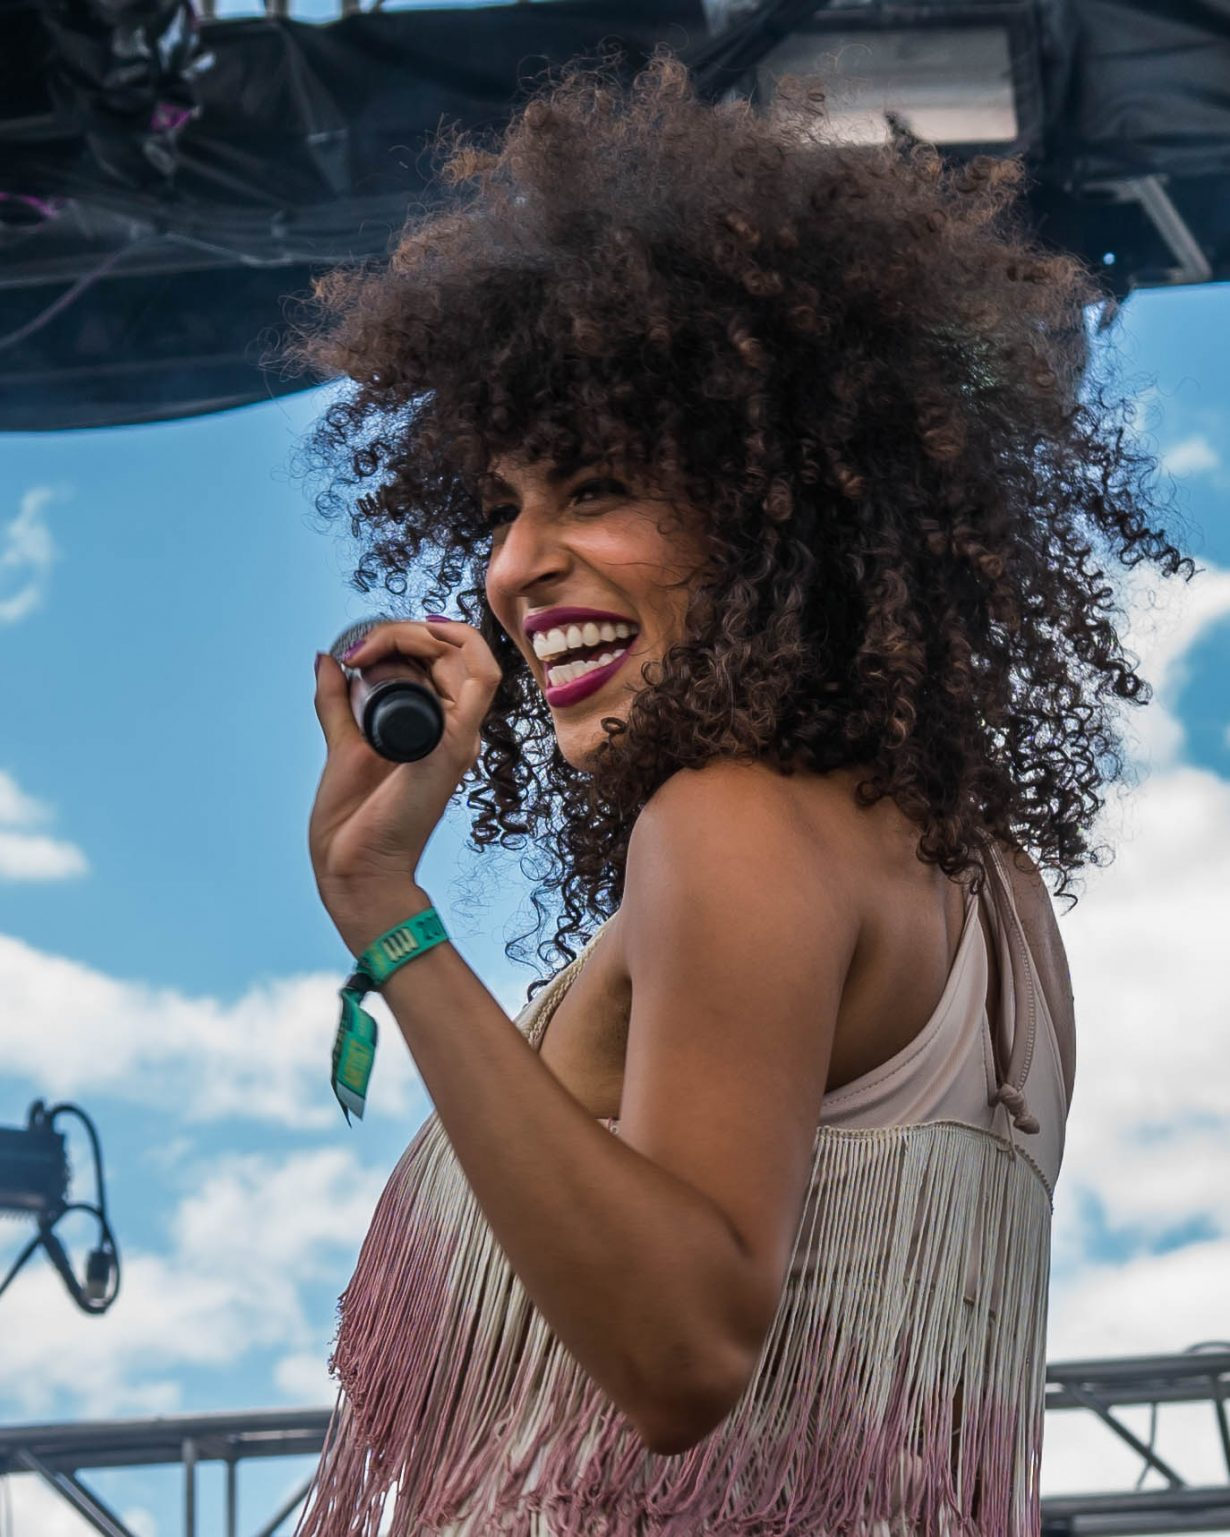 Gavin Turek. Mamby On The Beach 2017. Photo Kevin Baker 5 1230x1537 Mamby on the Beach is the perfect blend of Chicago vibe and tunes